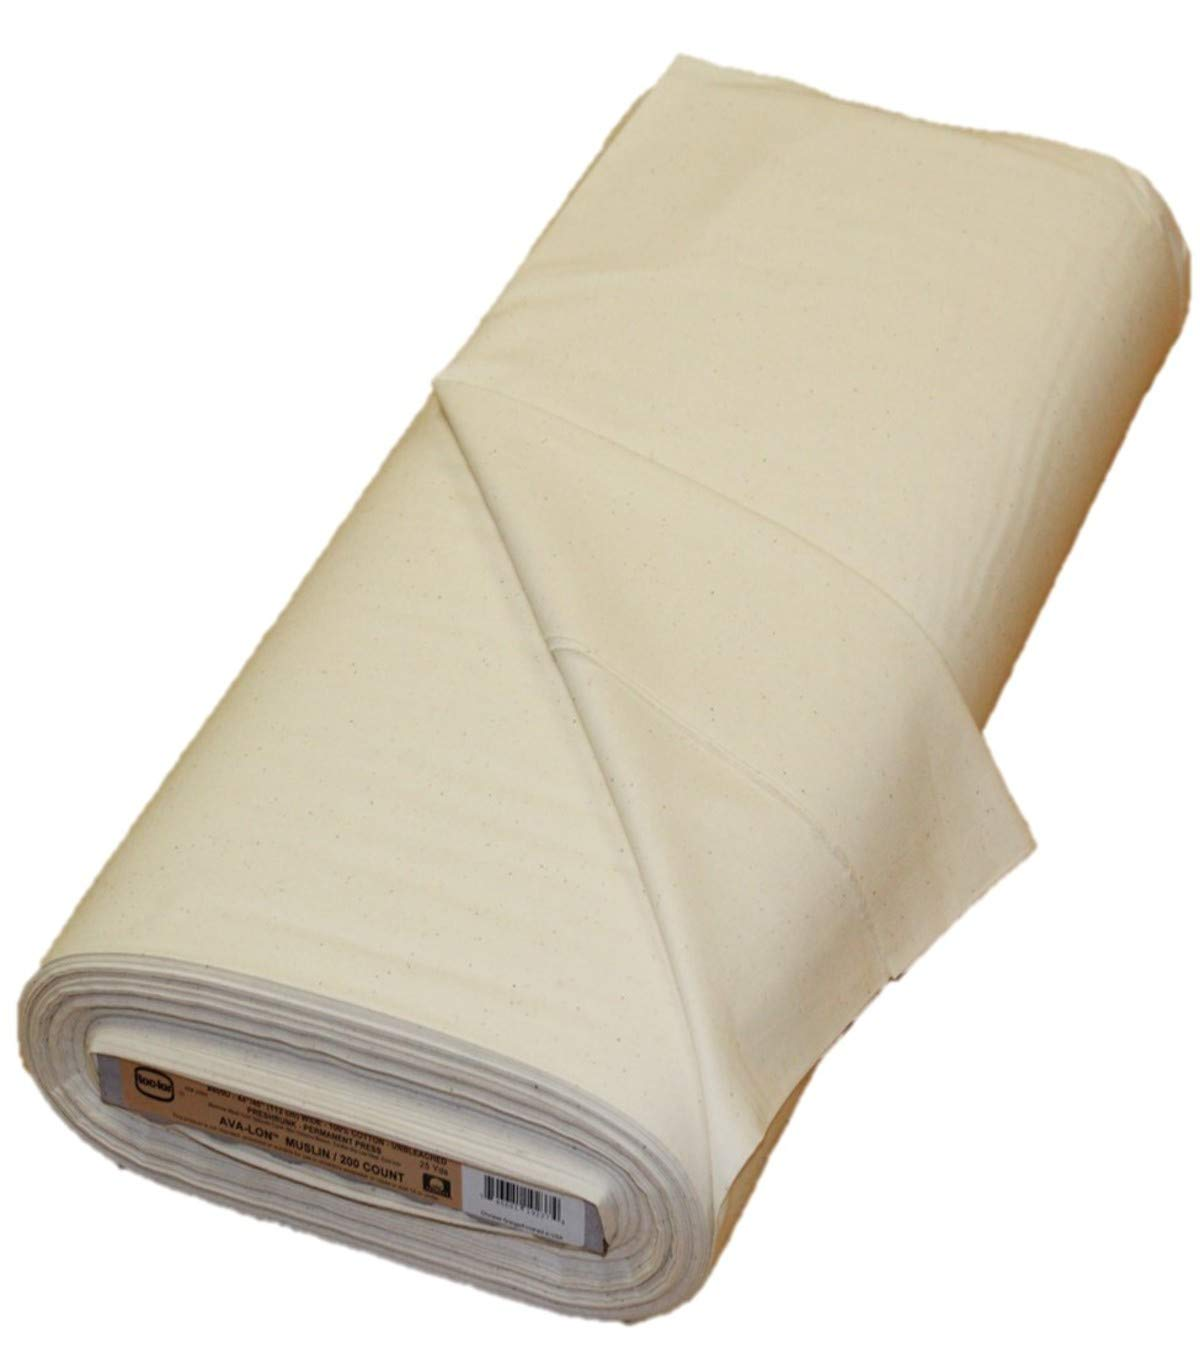 Rockland 86230 200 Count Muslin, Unbleached/Natural